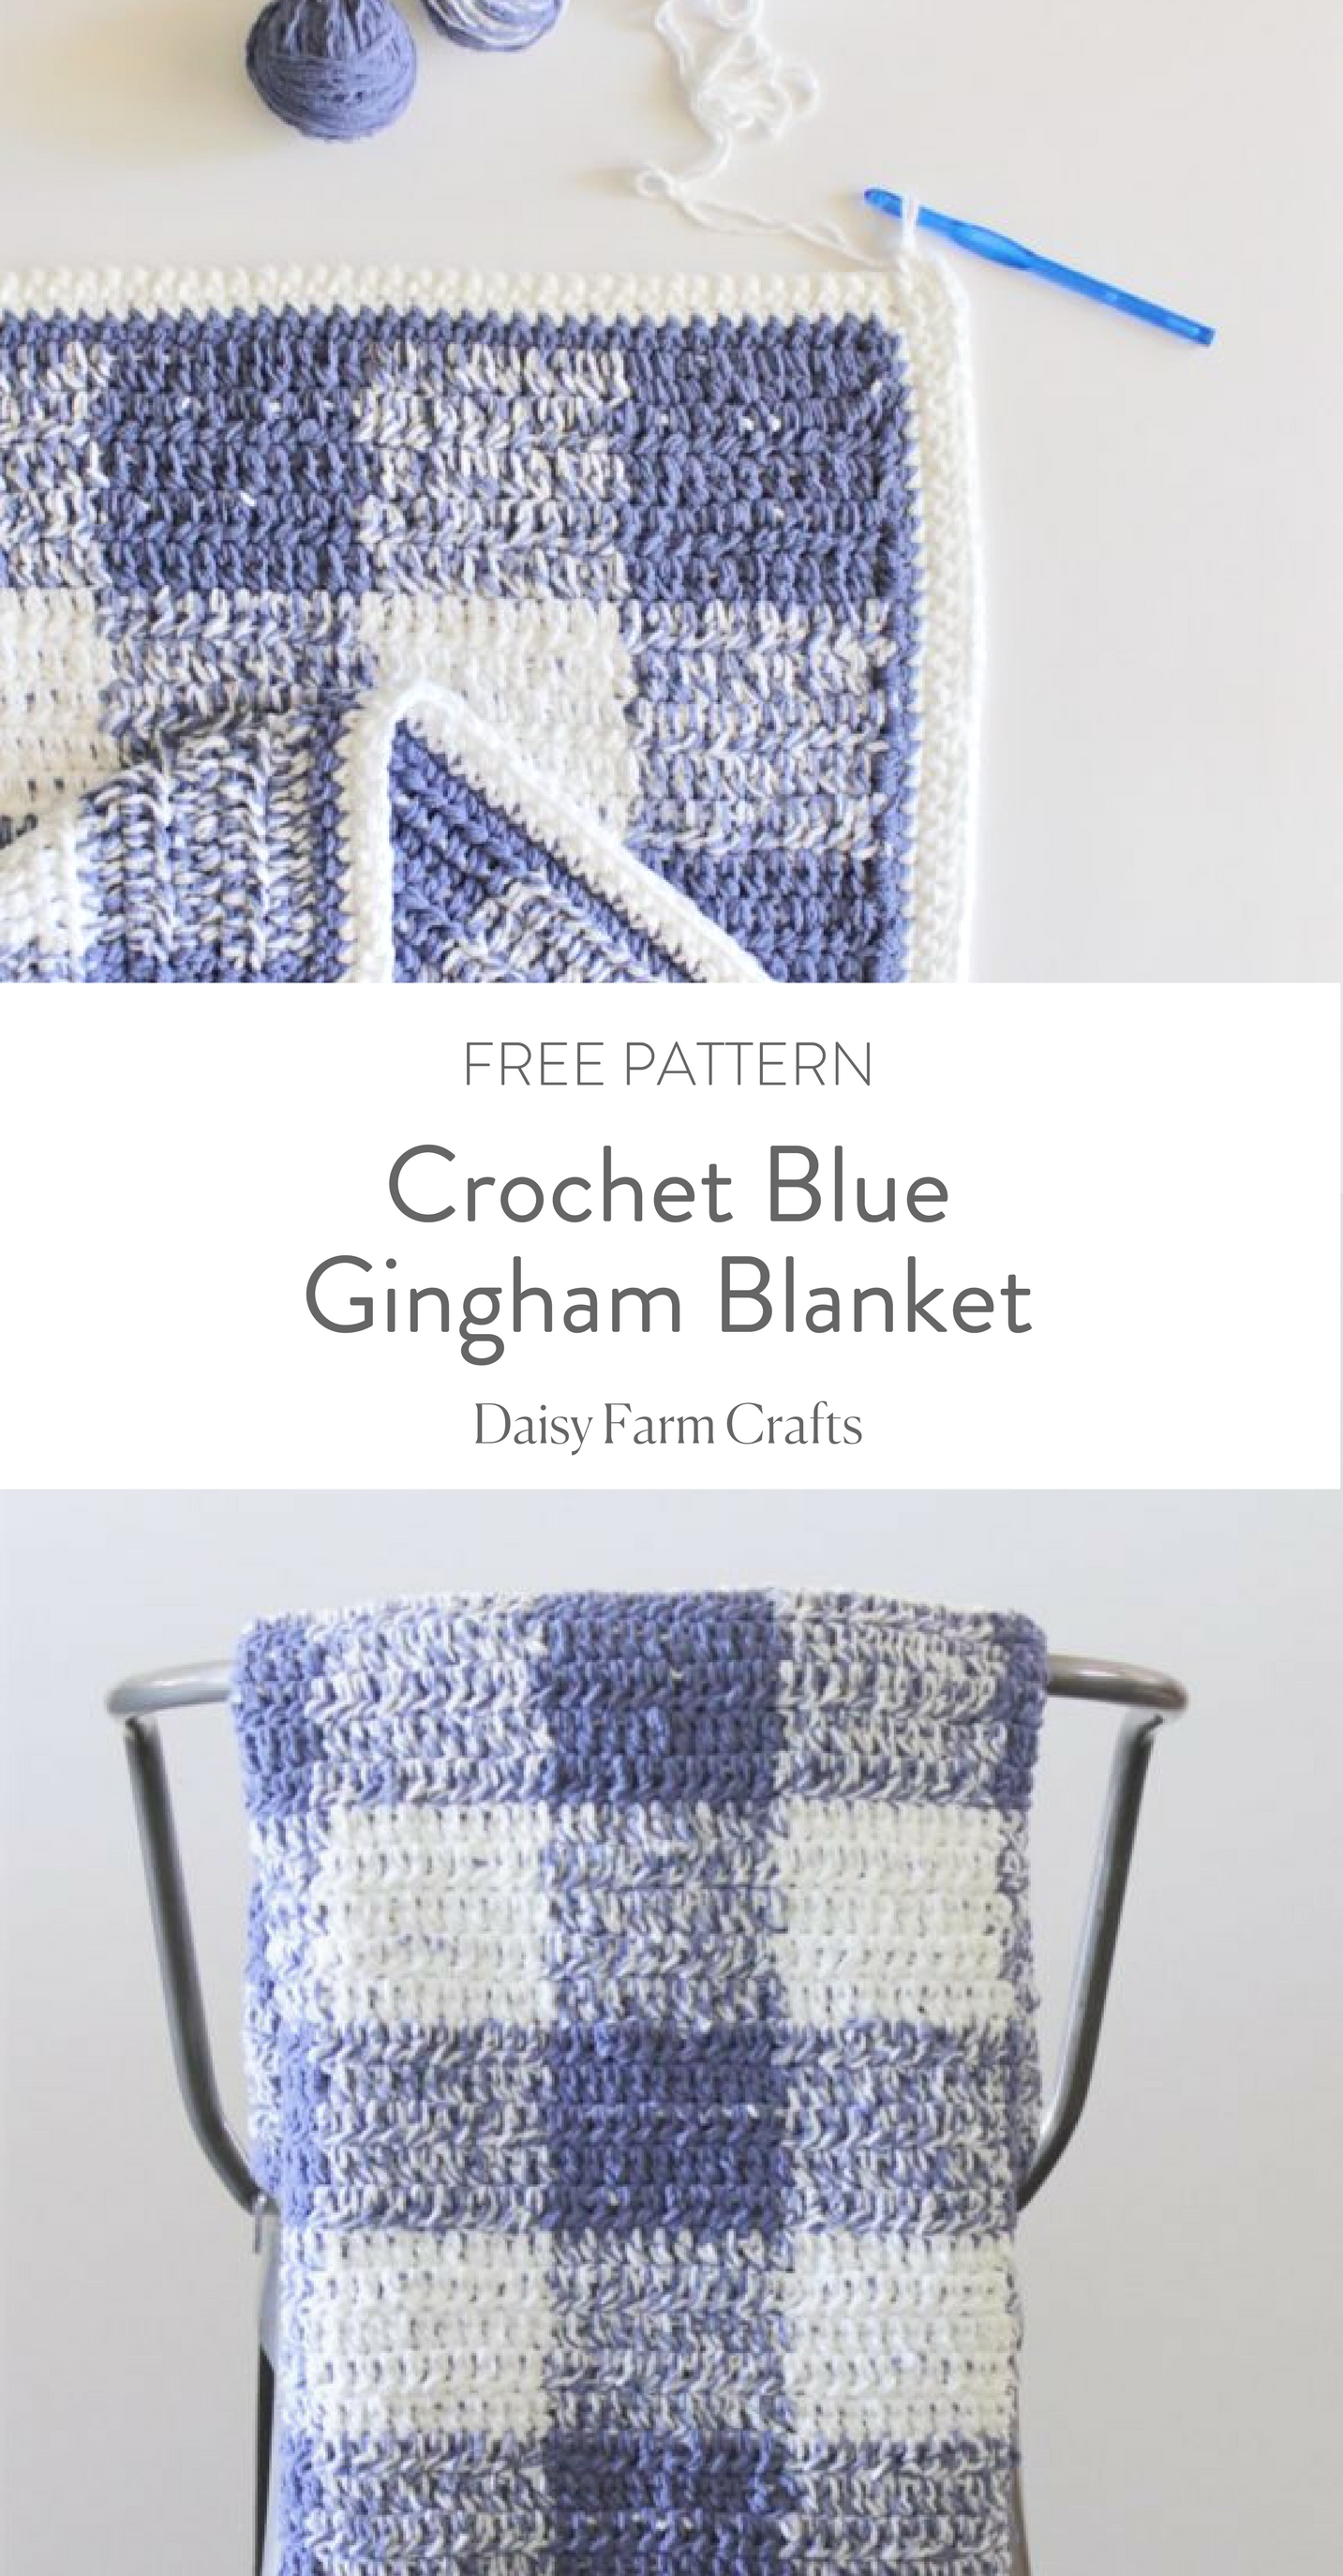 Crochet Blue Gingham Blanket - Free Pattern | Crochet | Pinterest ...